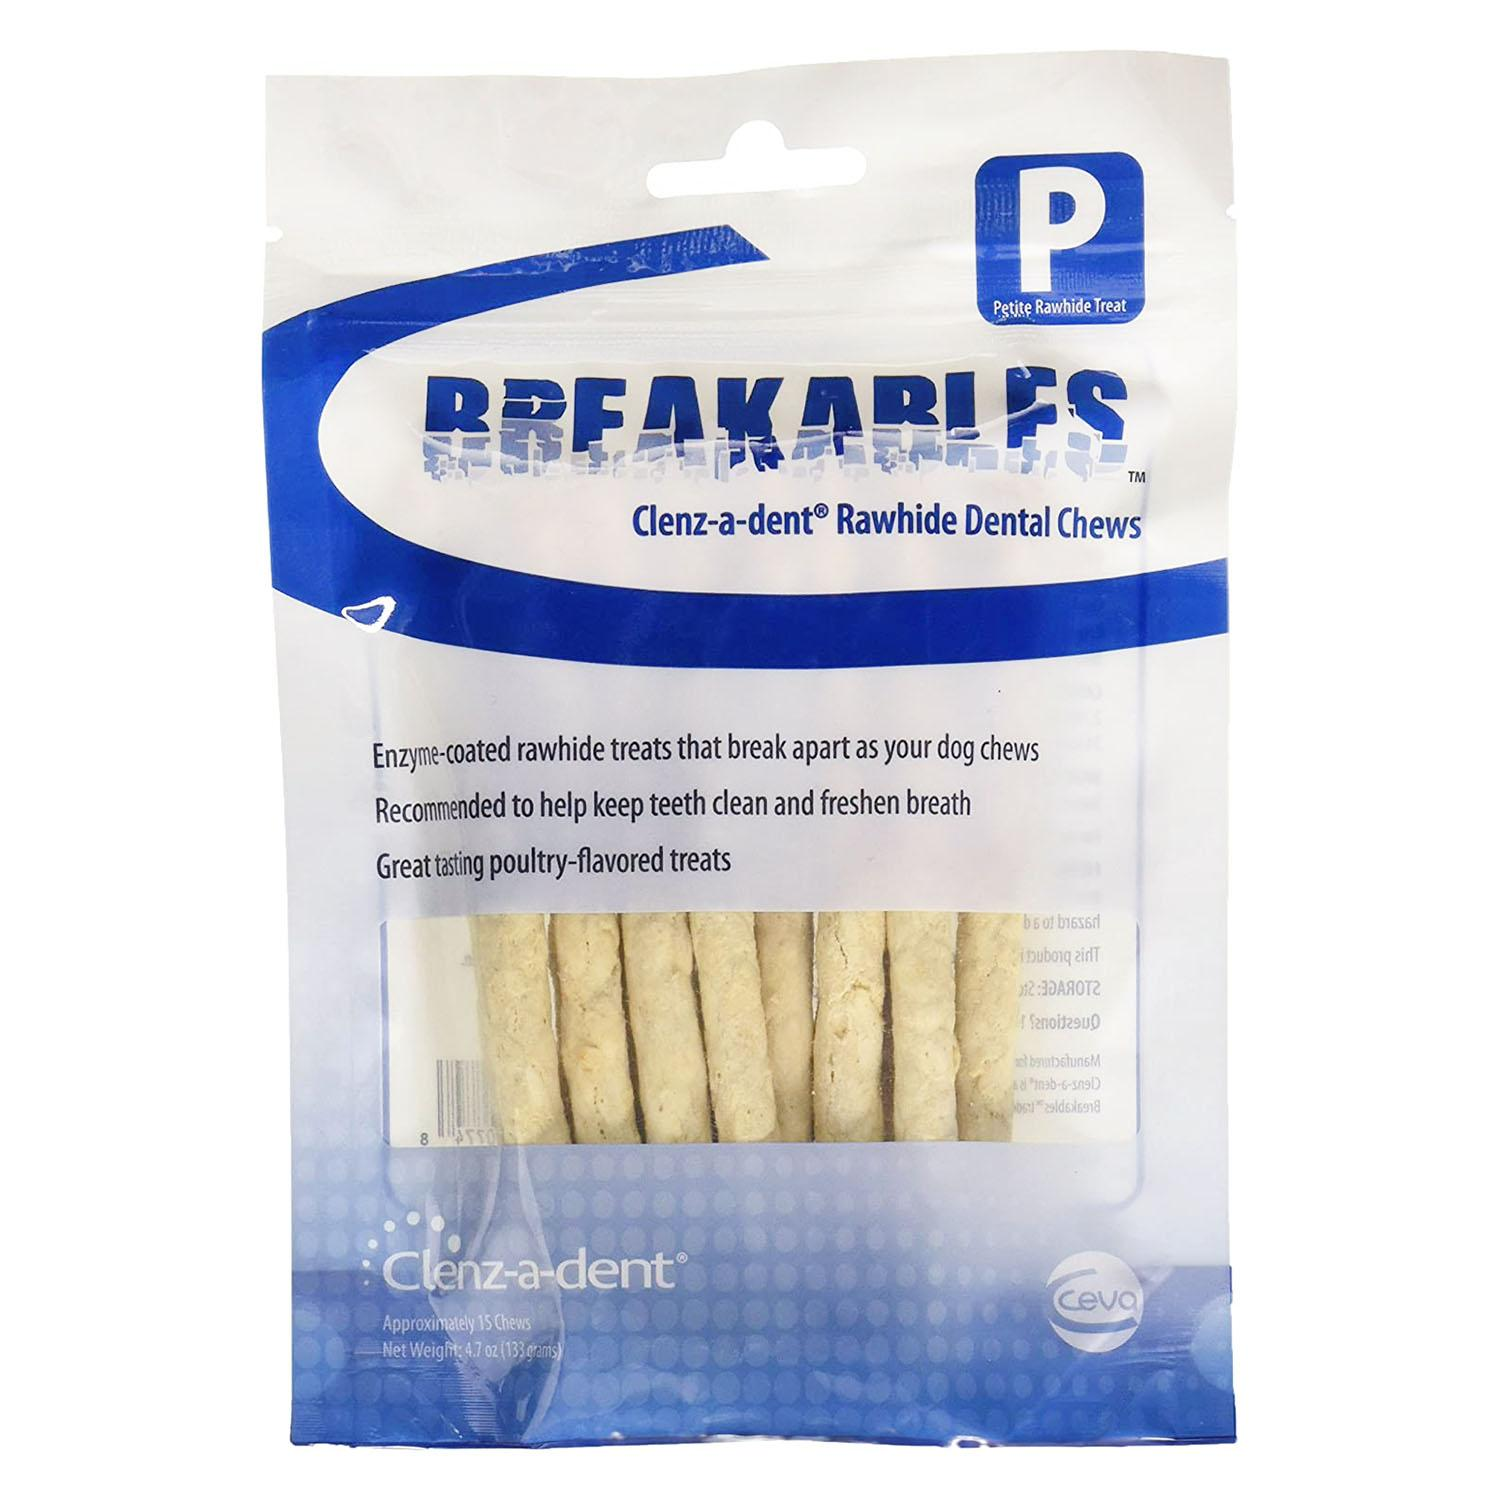 Ceva Breakables Clenz-A-Dent Rawhide Dental Chews for Dogs